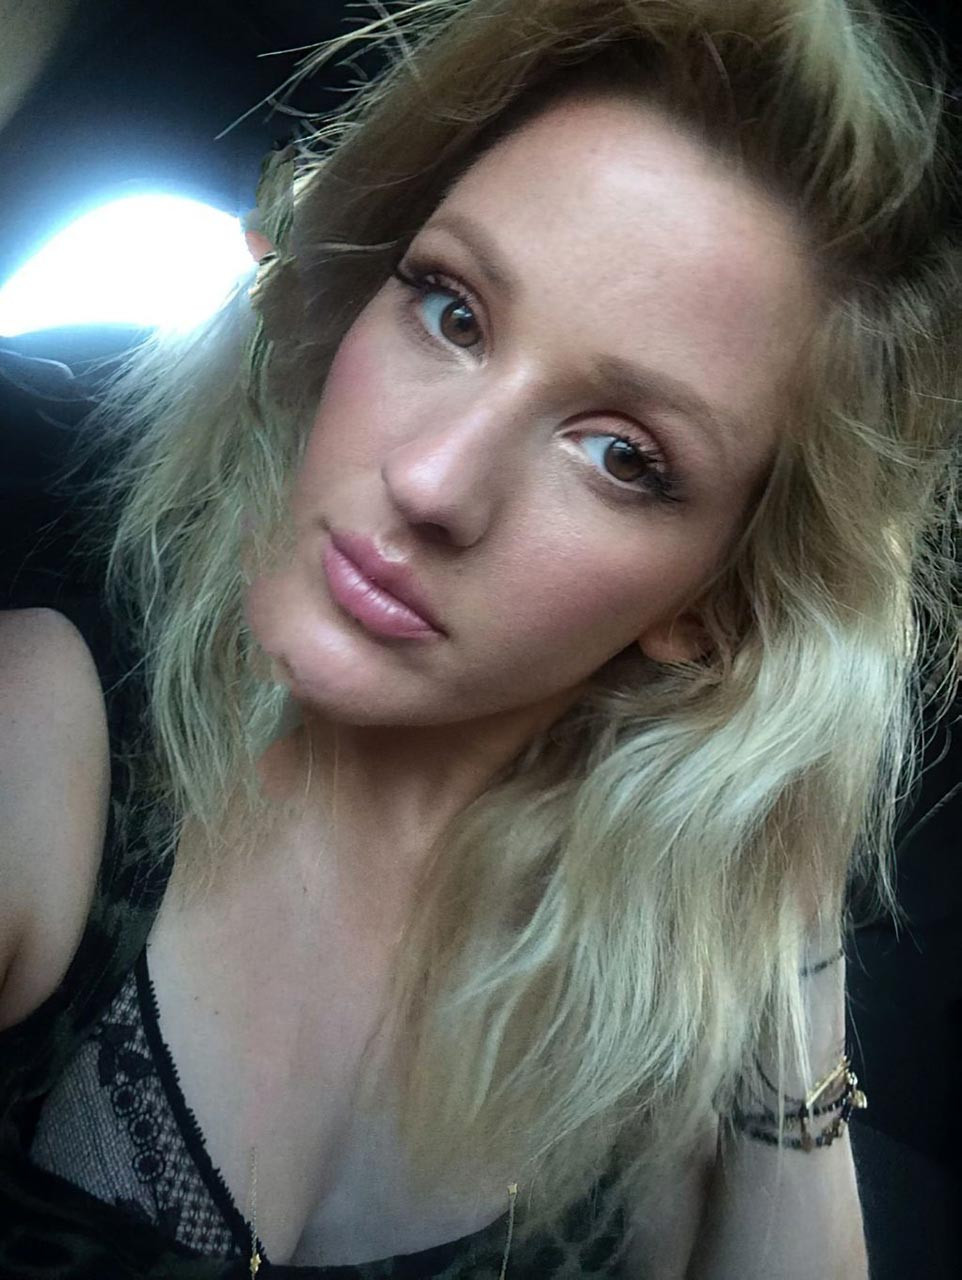 Ellie Goulding Leaked Nude Naked Sexy 57 fappenings.com